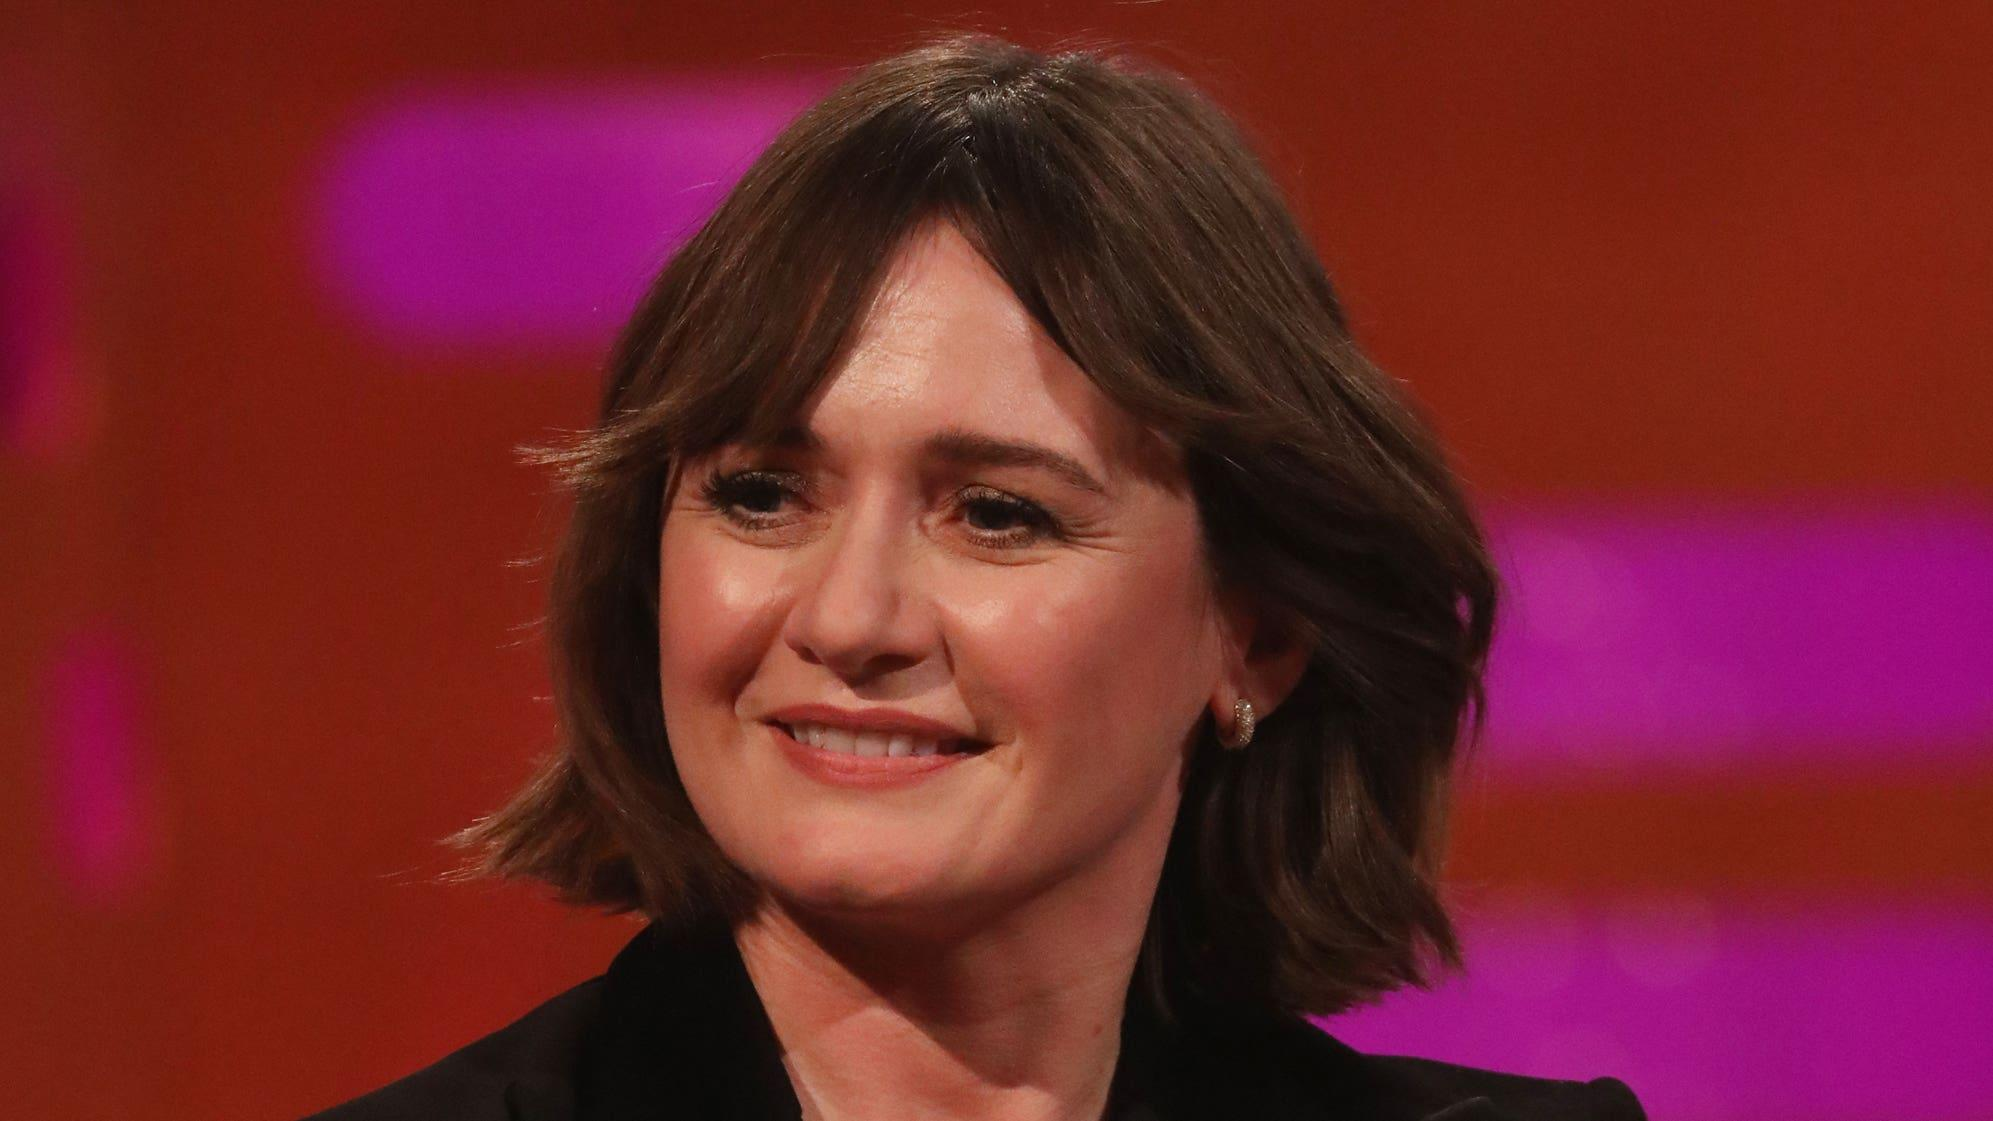 Emily Mortimer: Filming The Pursuit Of Love during Covid had its pros and cons